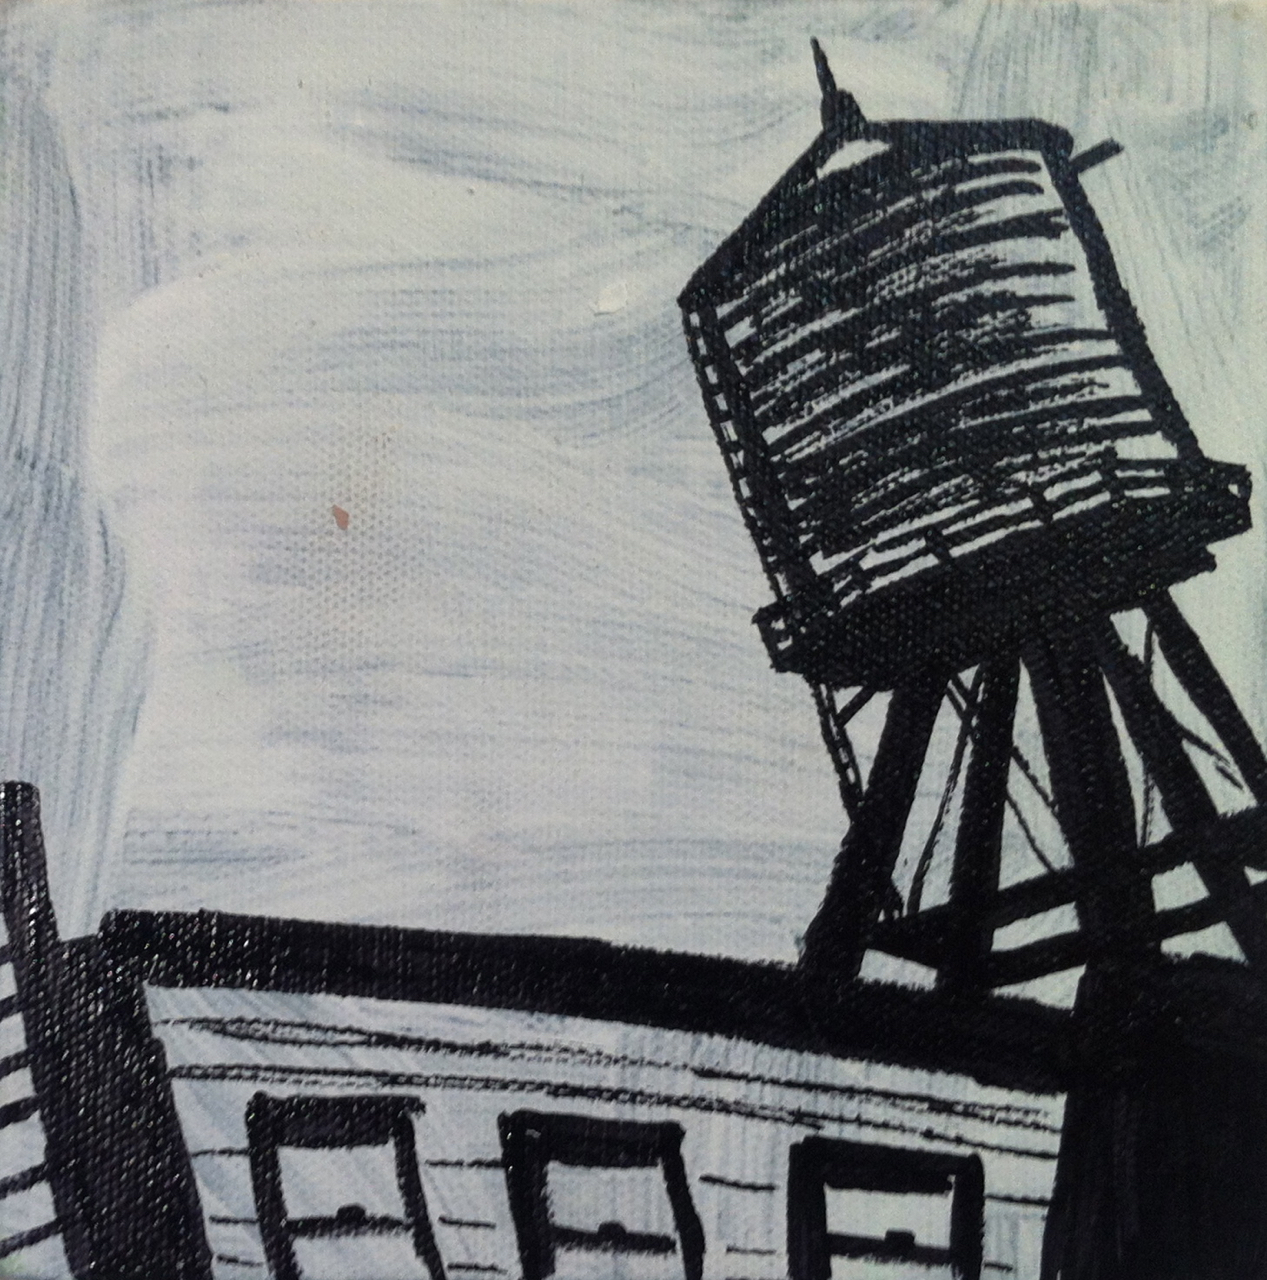 Chicago Angle, acrylic and oil paint marker on canvas, 6x6, 2012, SOLD